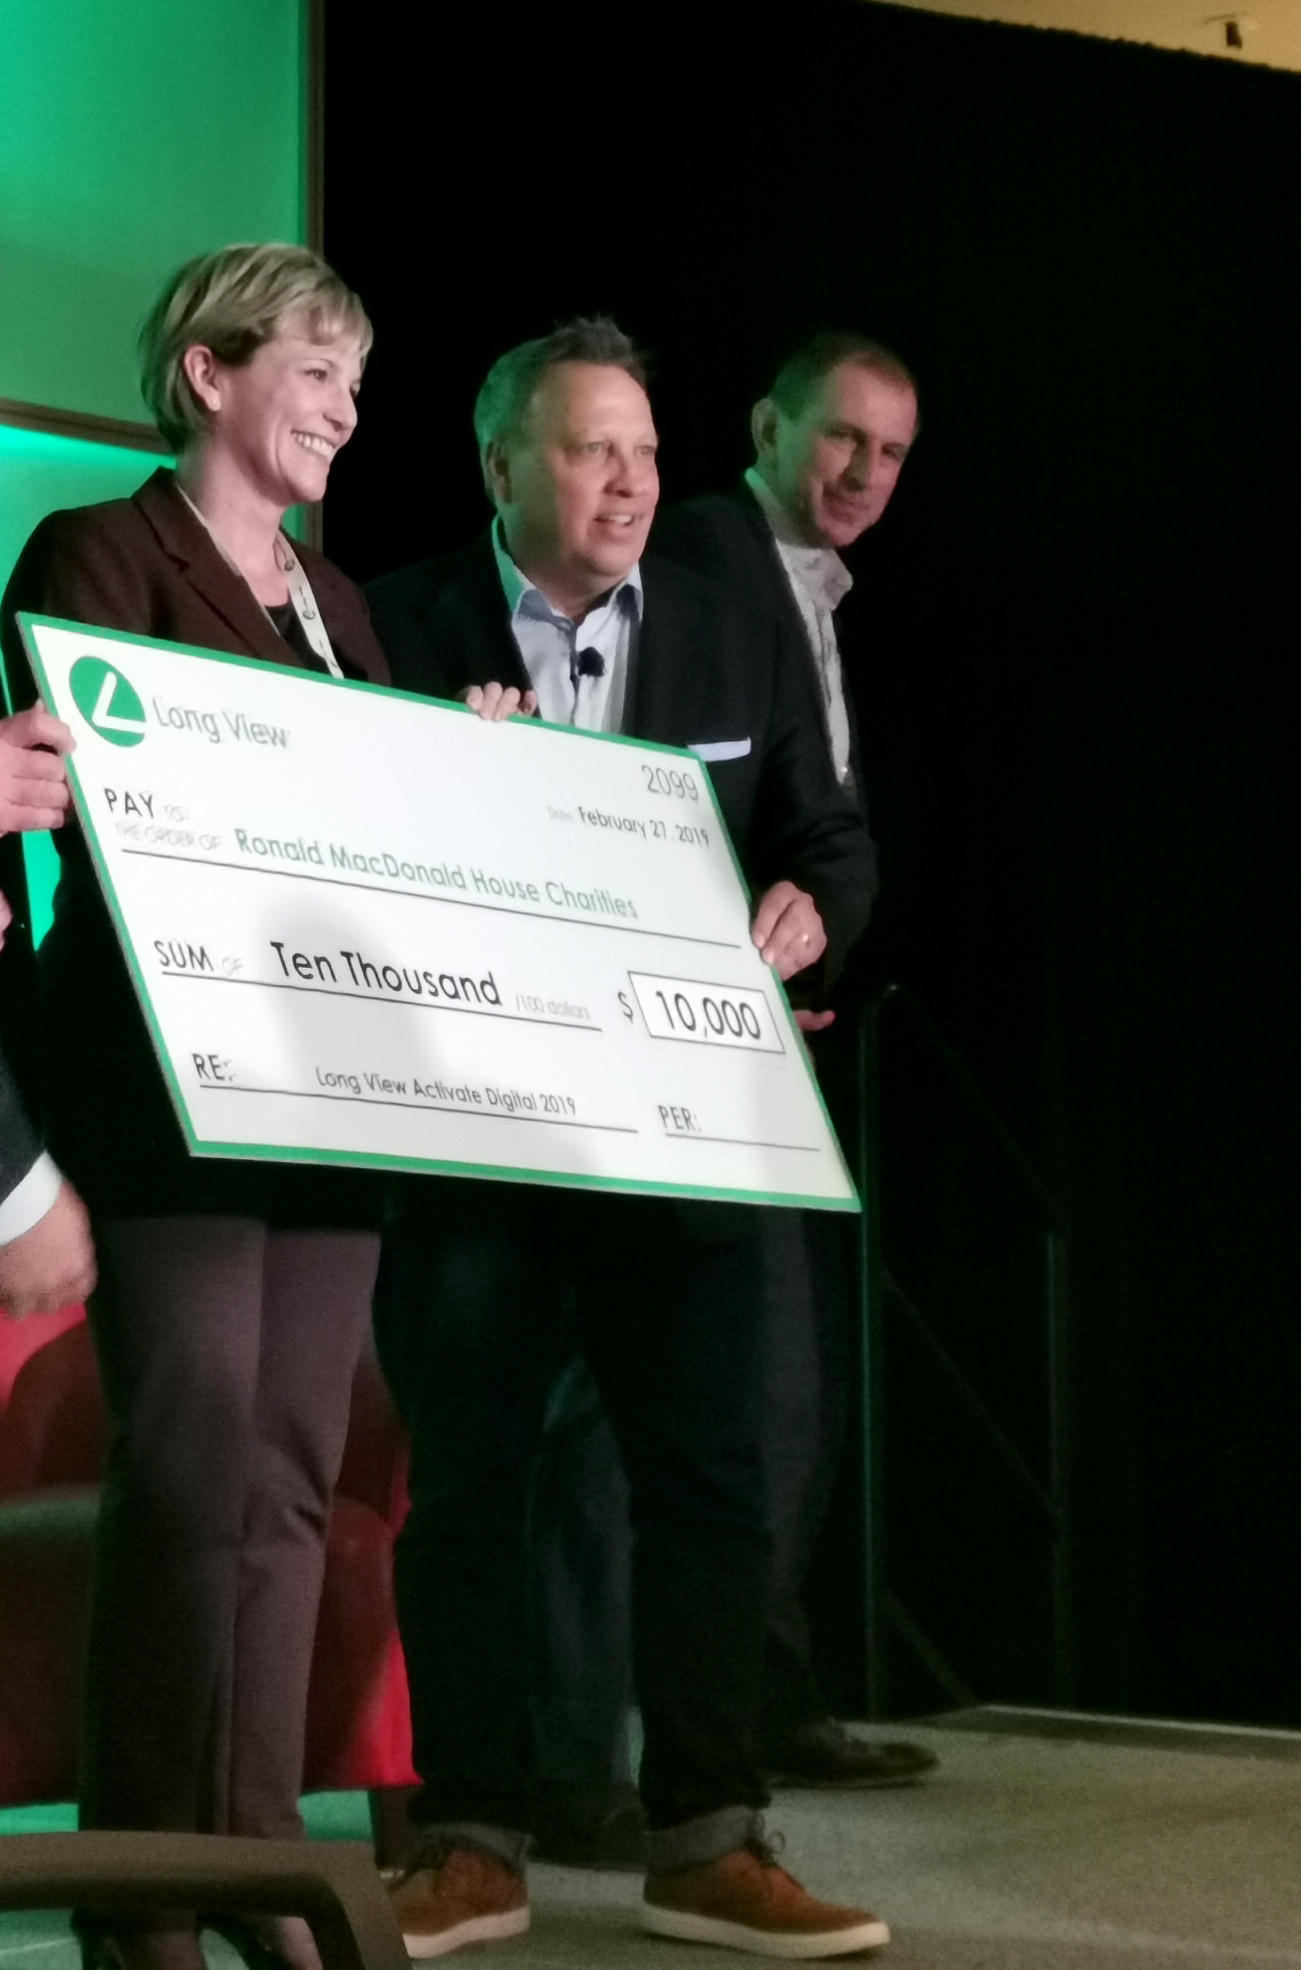 RMHC Toronto CEO Sally Ginter receives a $10,000 donation from Long View Systems at Activate Digital 2019.